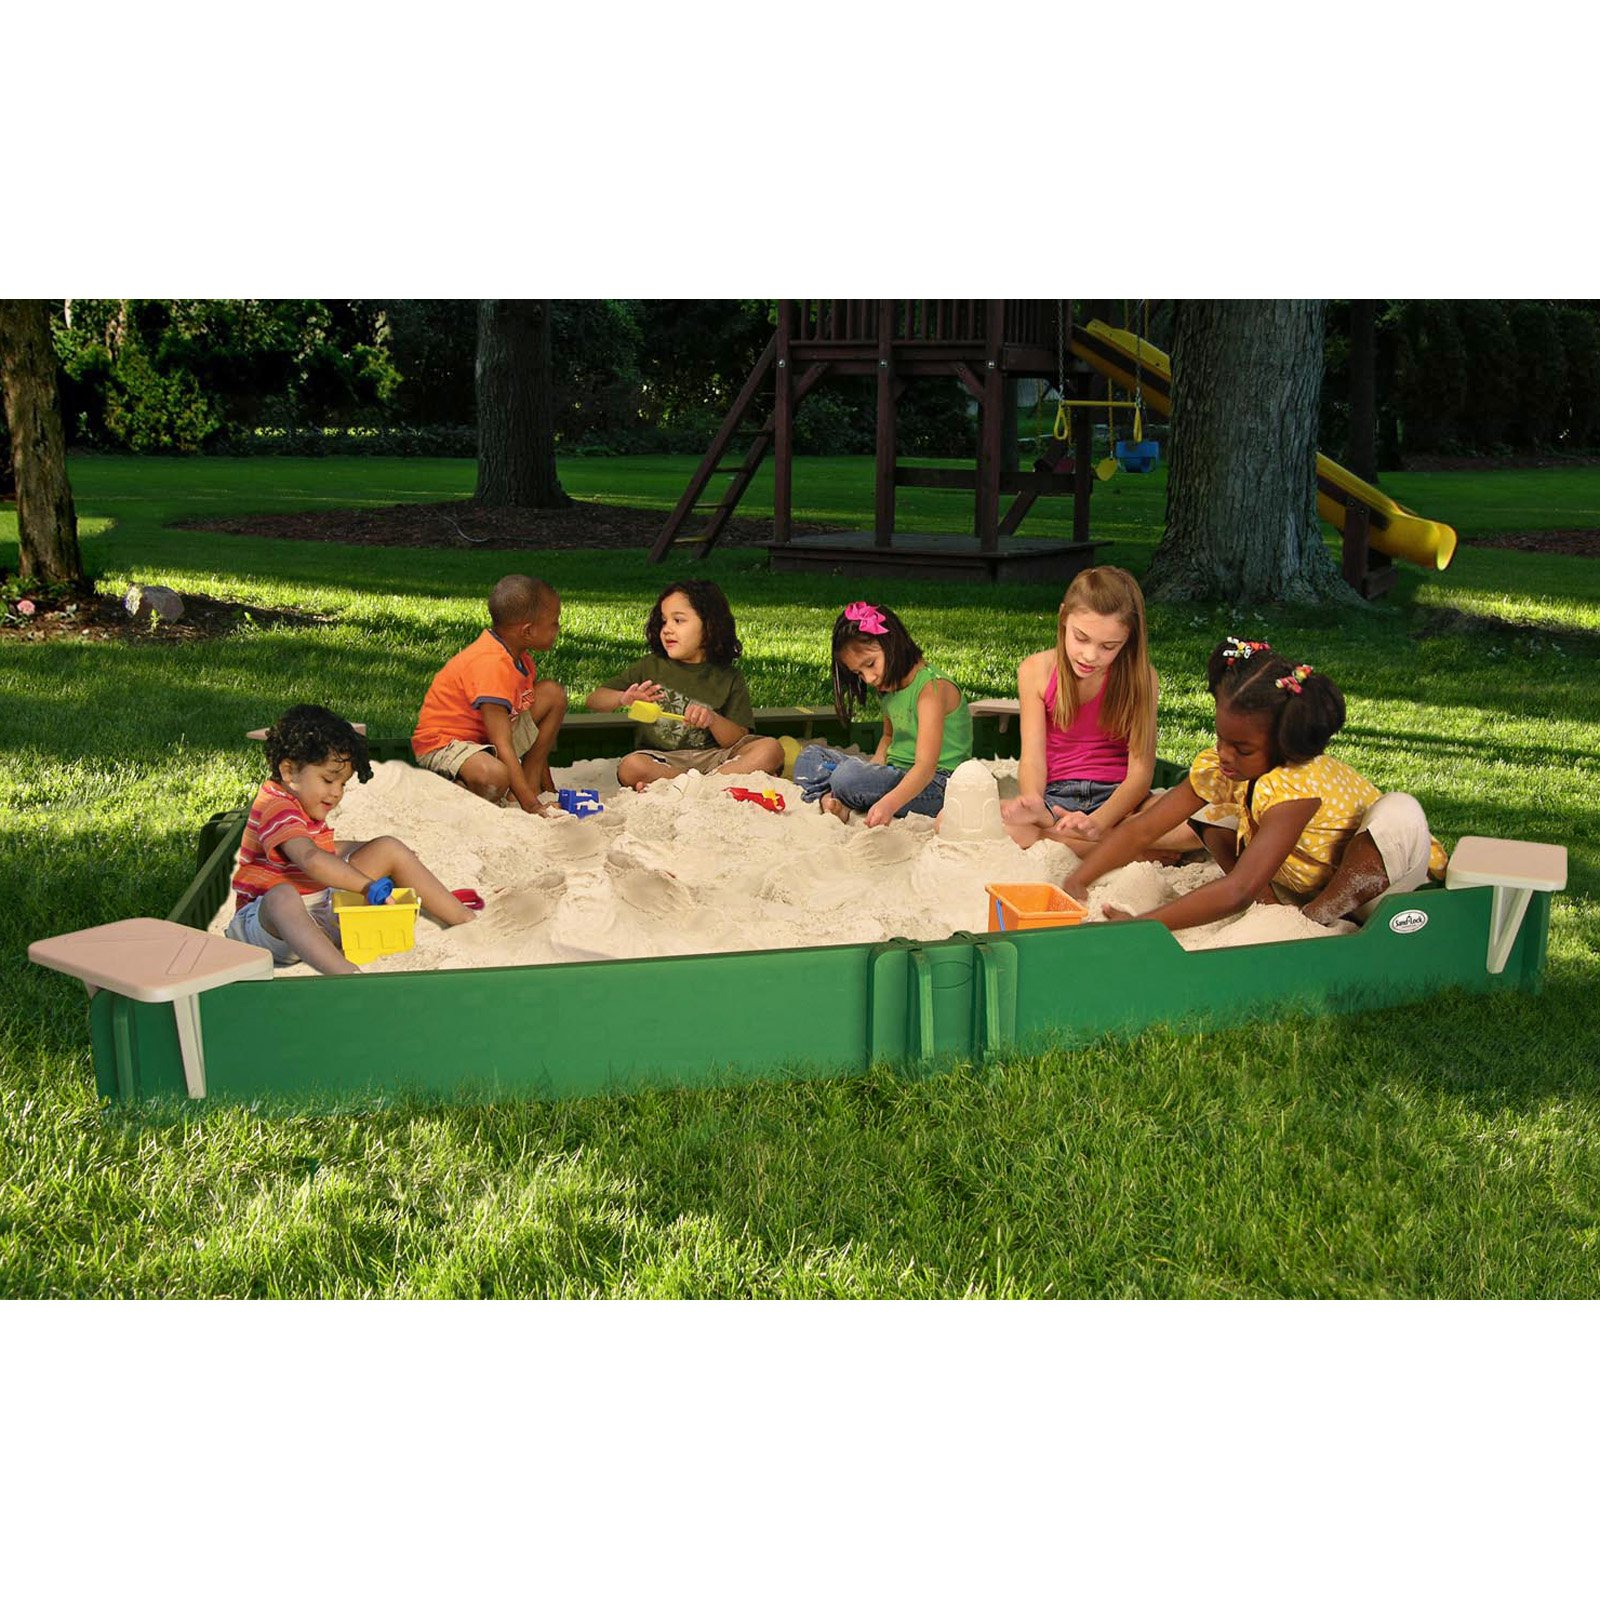 Sandlock CSG-120120 10 x 10-ft. Sandbox with Cover by Sandlock Sandbox LLC